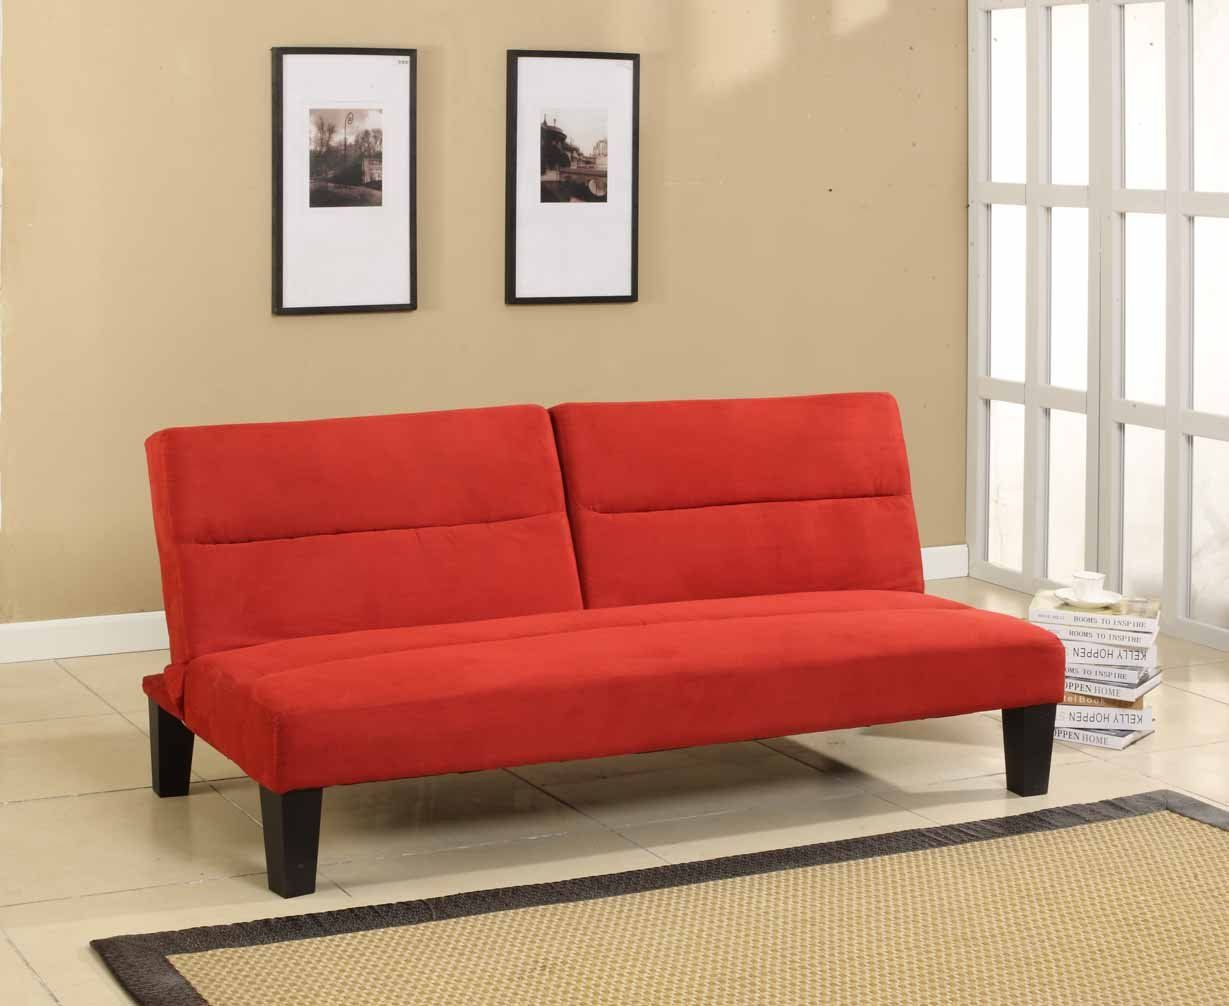 Com Kings Brand Microfiber Split Back Adjule Klik Klak Sofa Futon Bed Sleeper Red Kitchen Dining